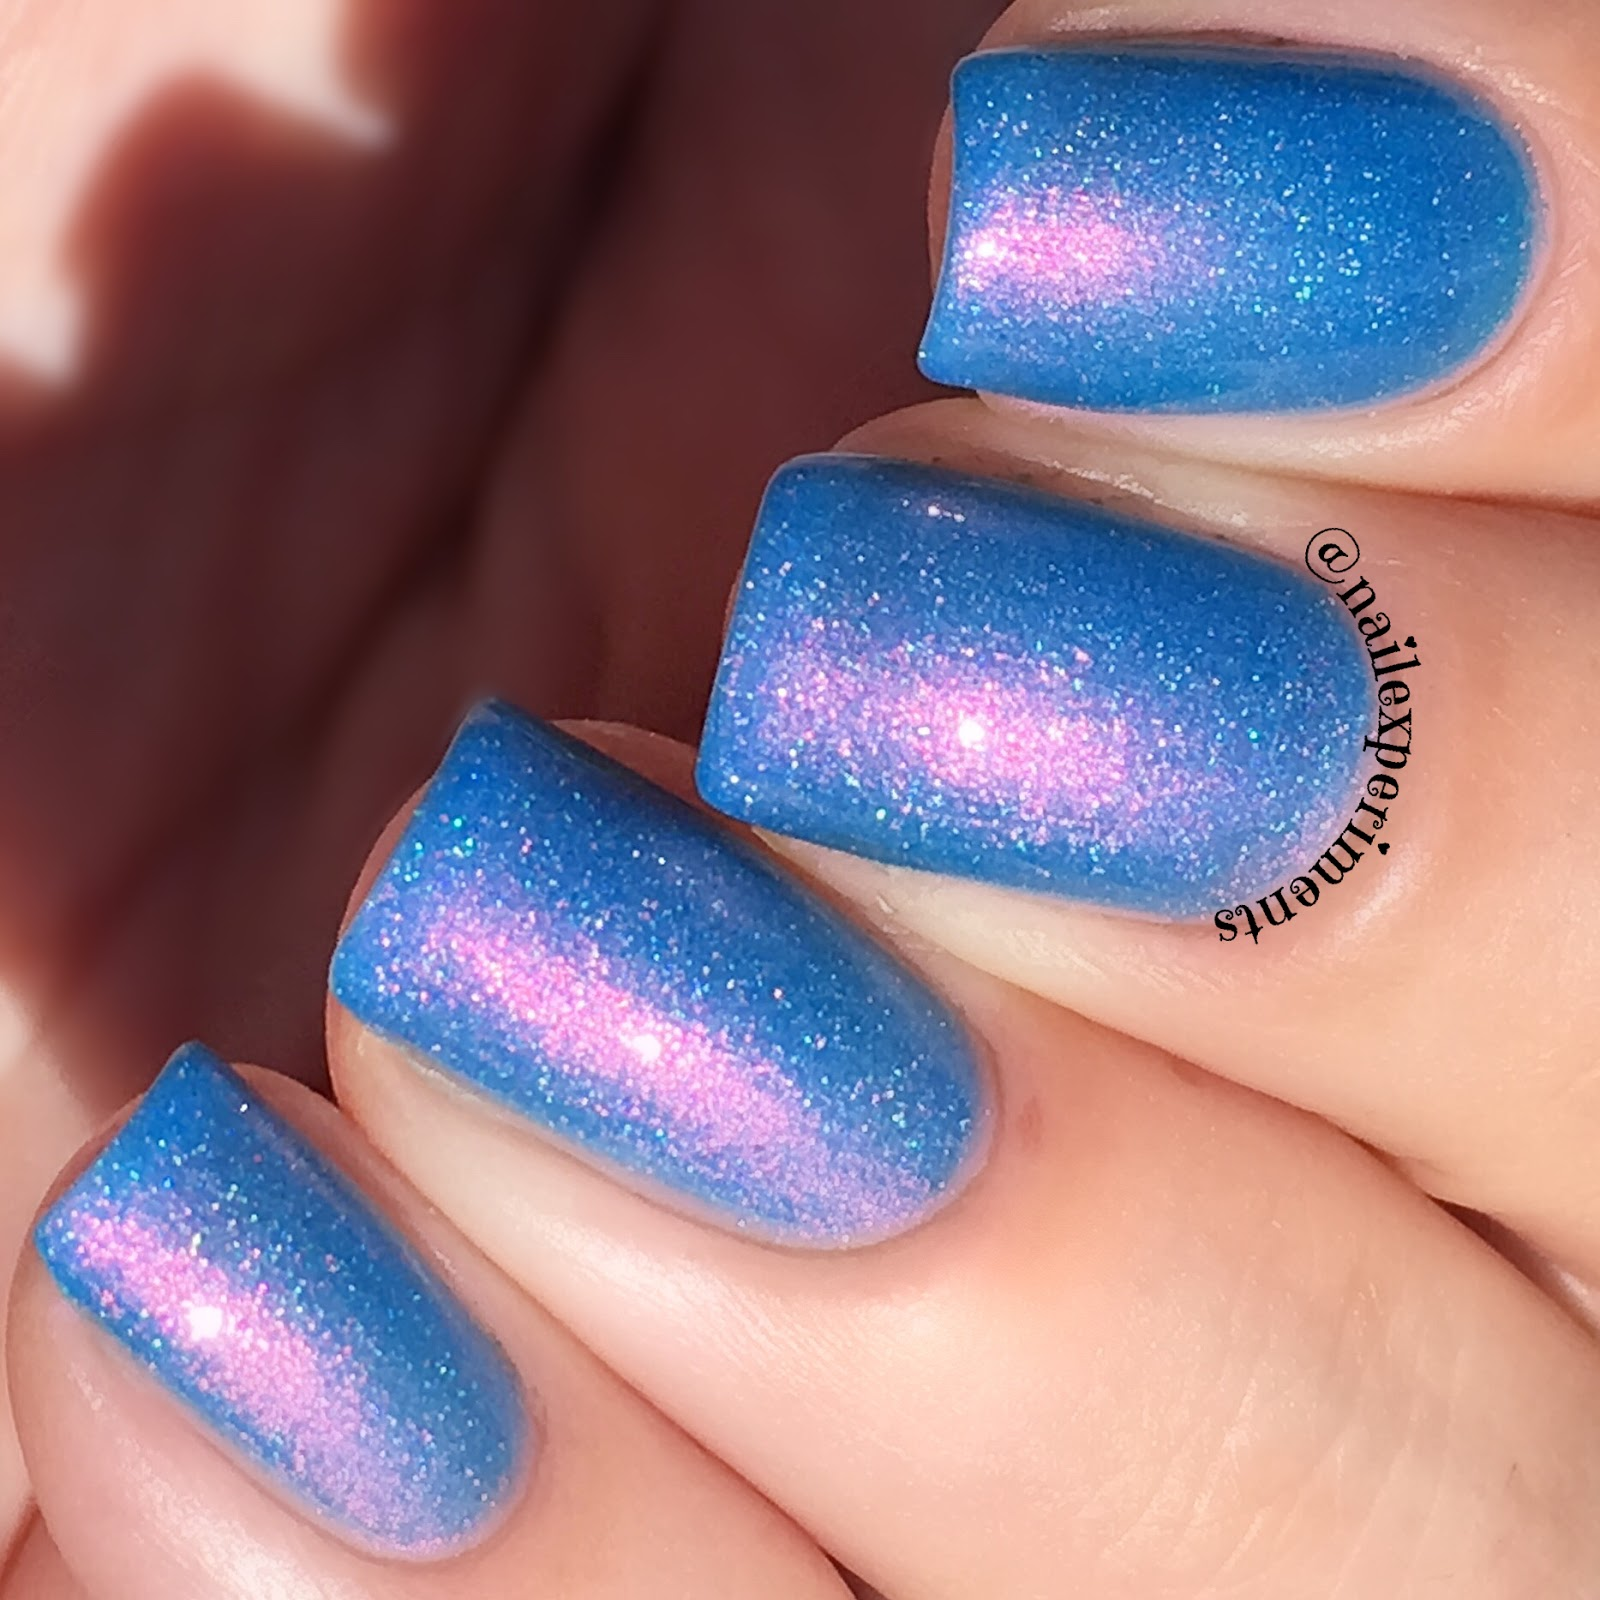 colors by llarowe late summer 2017 collection polish dive right in